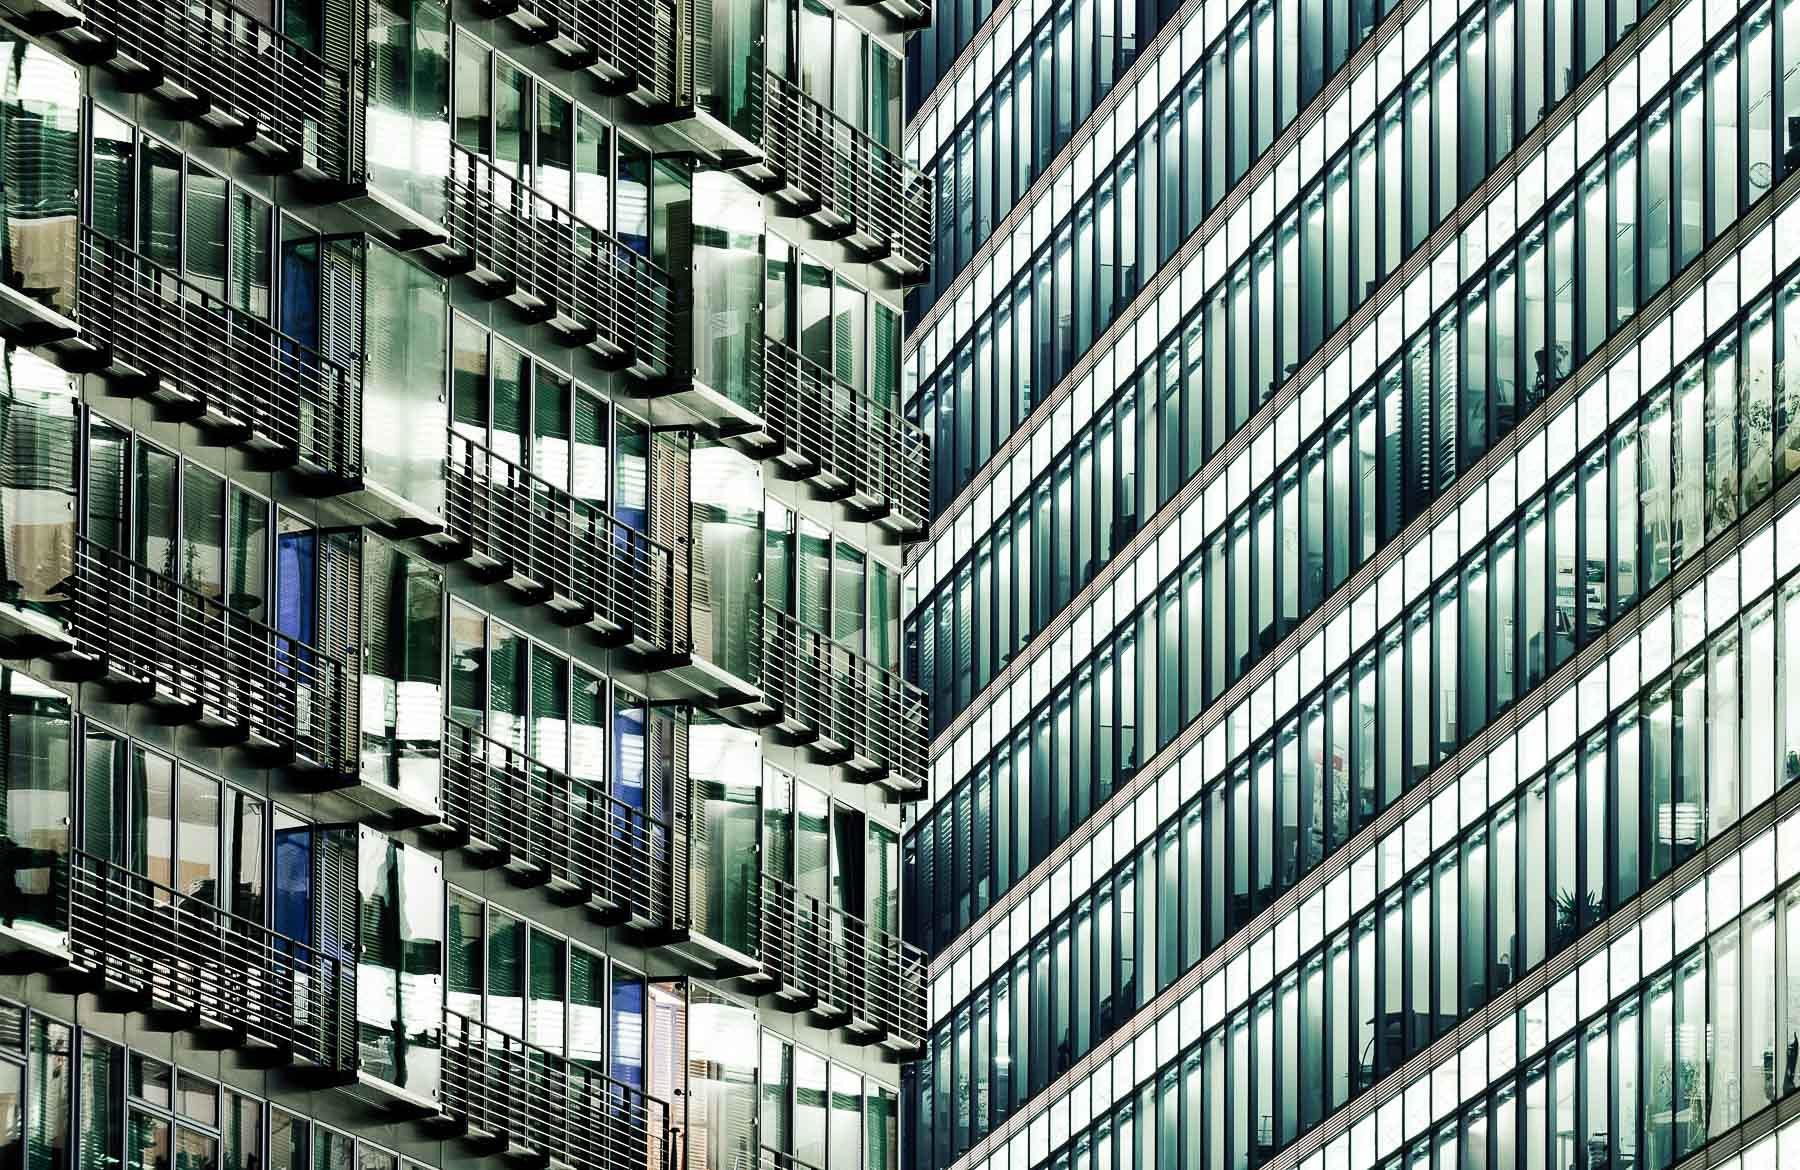 detail-windows-potsdamer-platz-berlin-germany-21